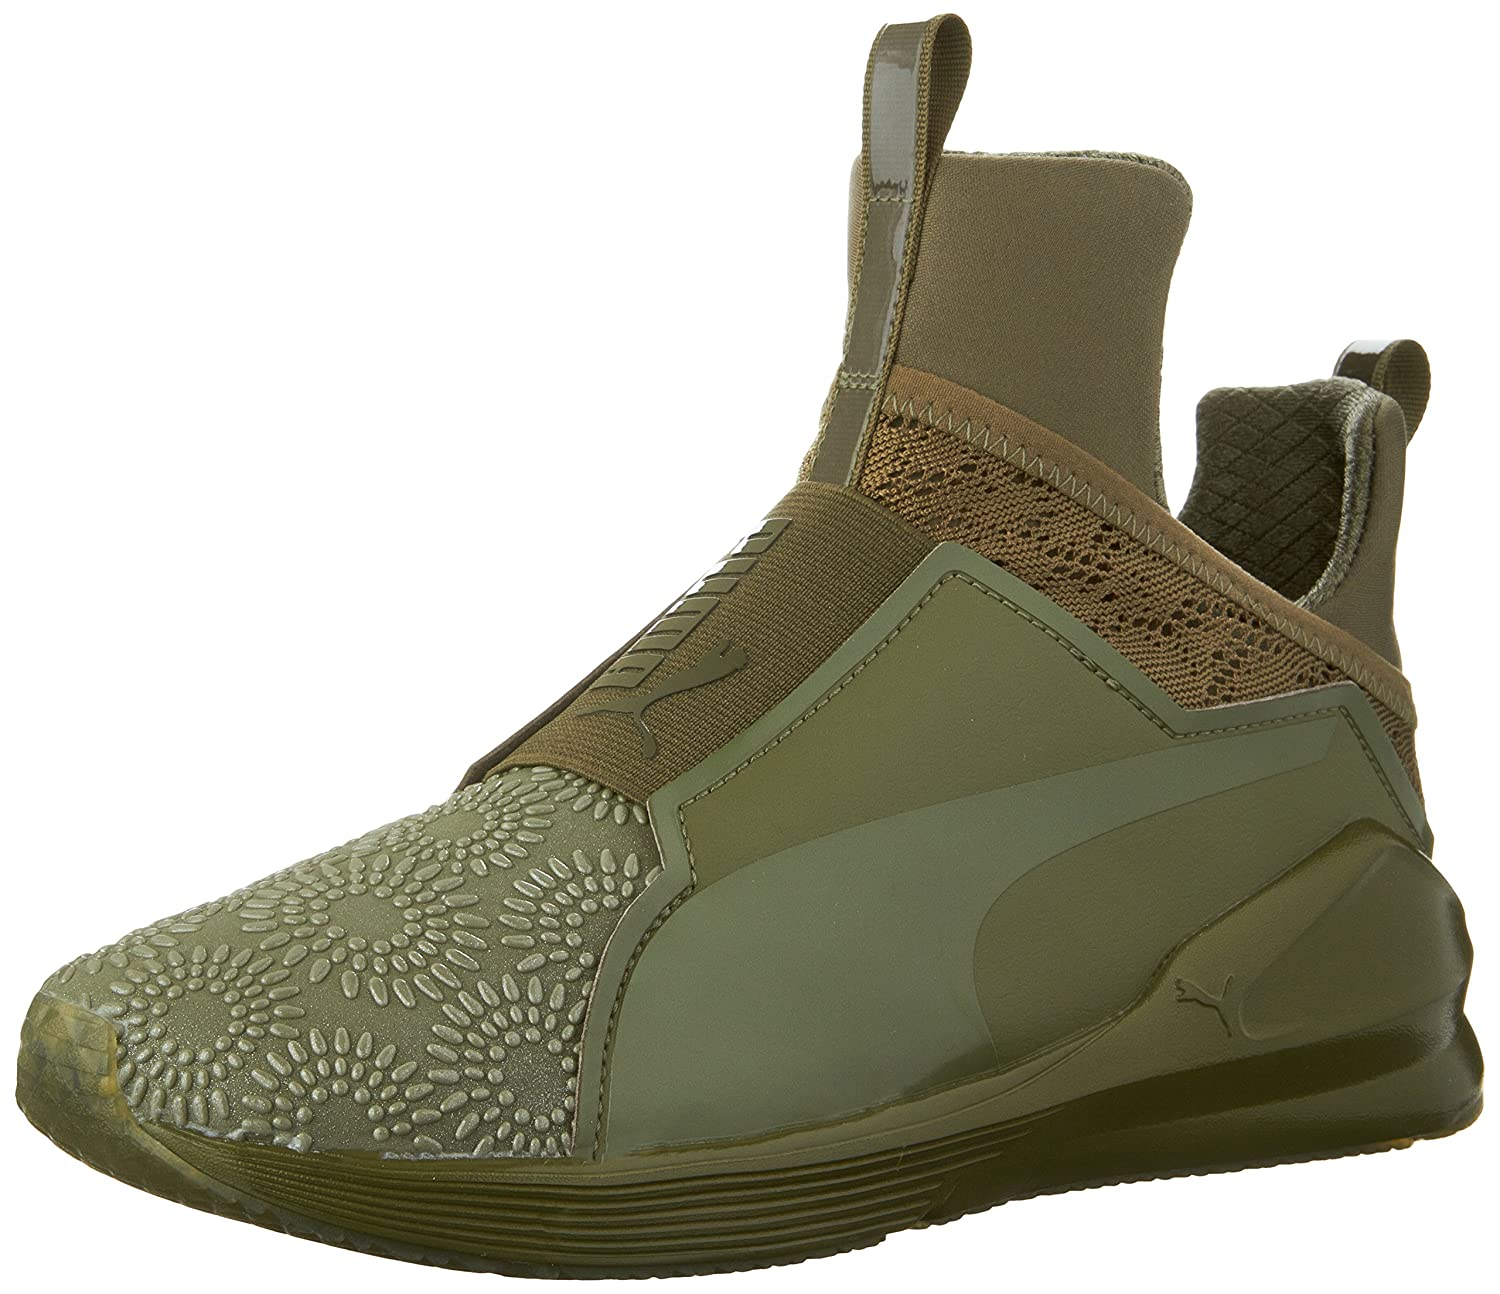 PUMA Women's Fierce Krm Cross-Trainer Shoe B01FE0J2SG 6.5 B(M) US|Burnt Olive/Puma Black